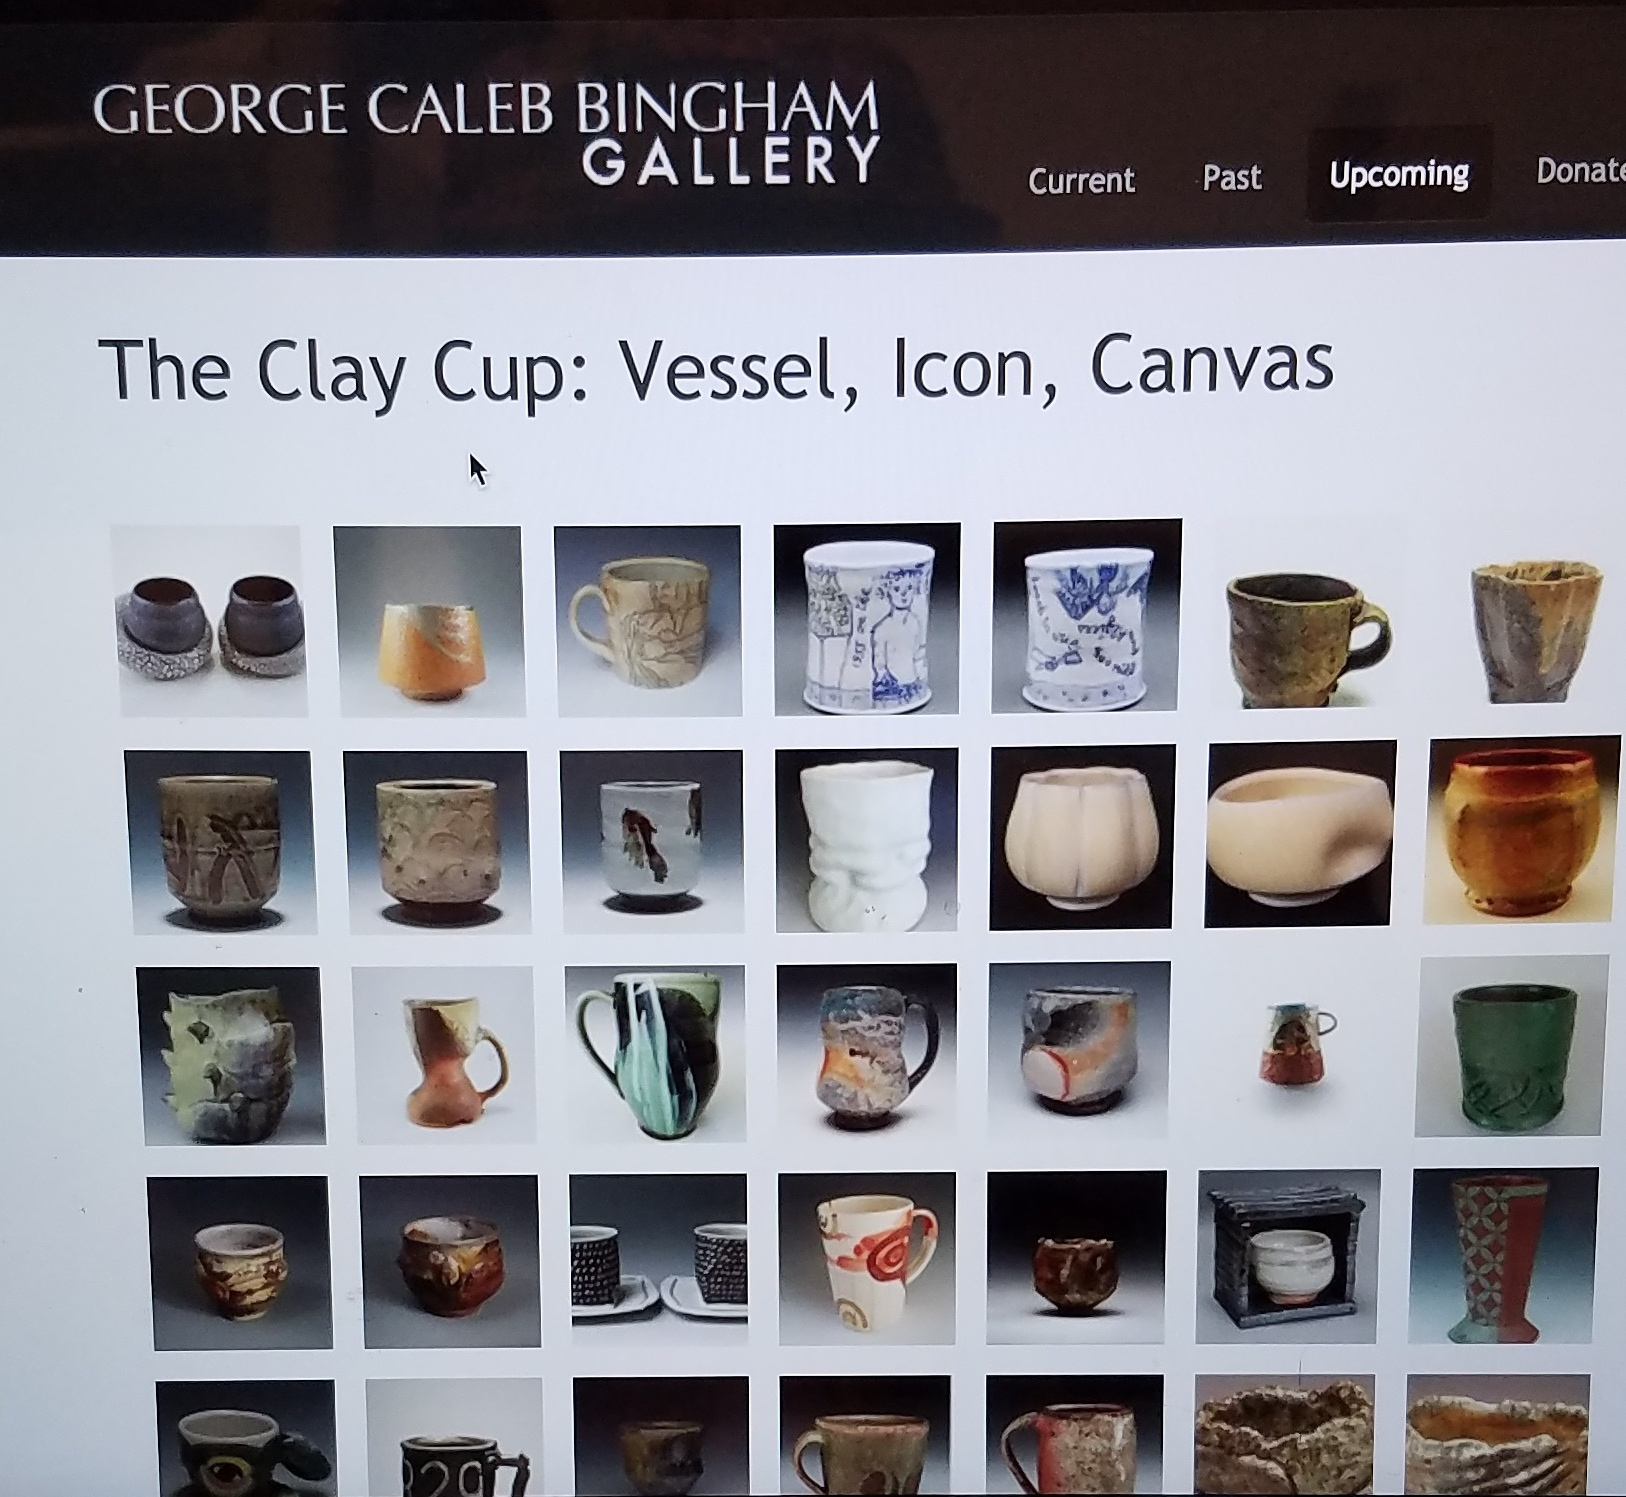 The Clay Cup: Vessel, Icon, Canvas at George Caleb Bingham Gallery October 24 - November 17